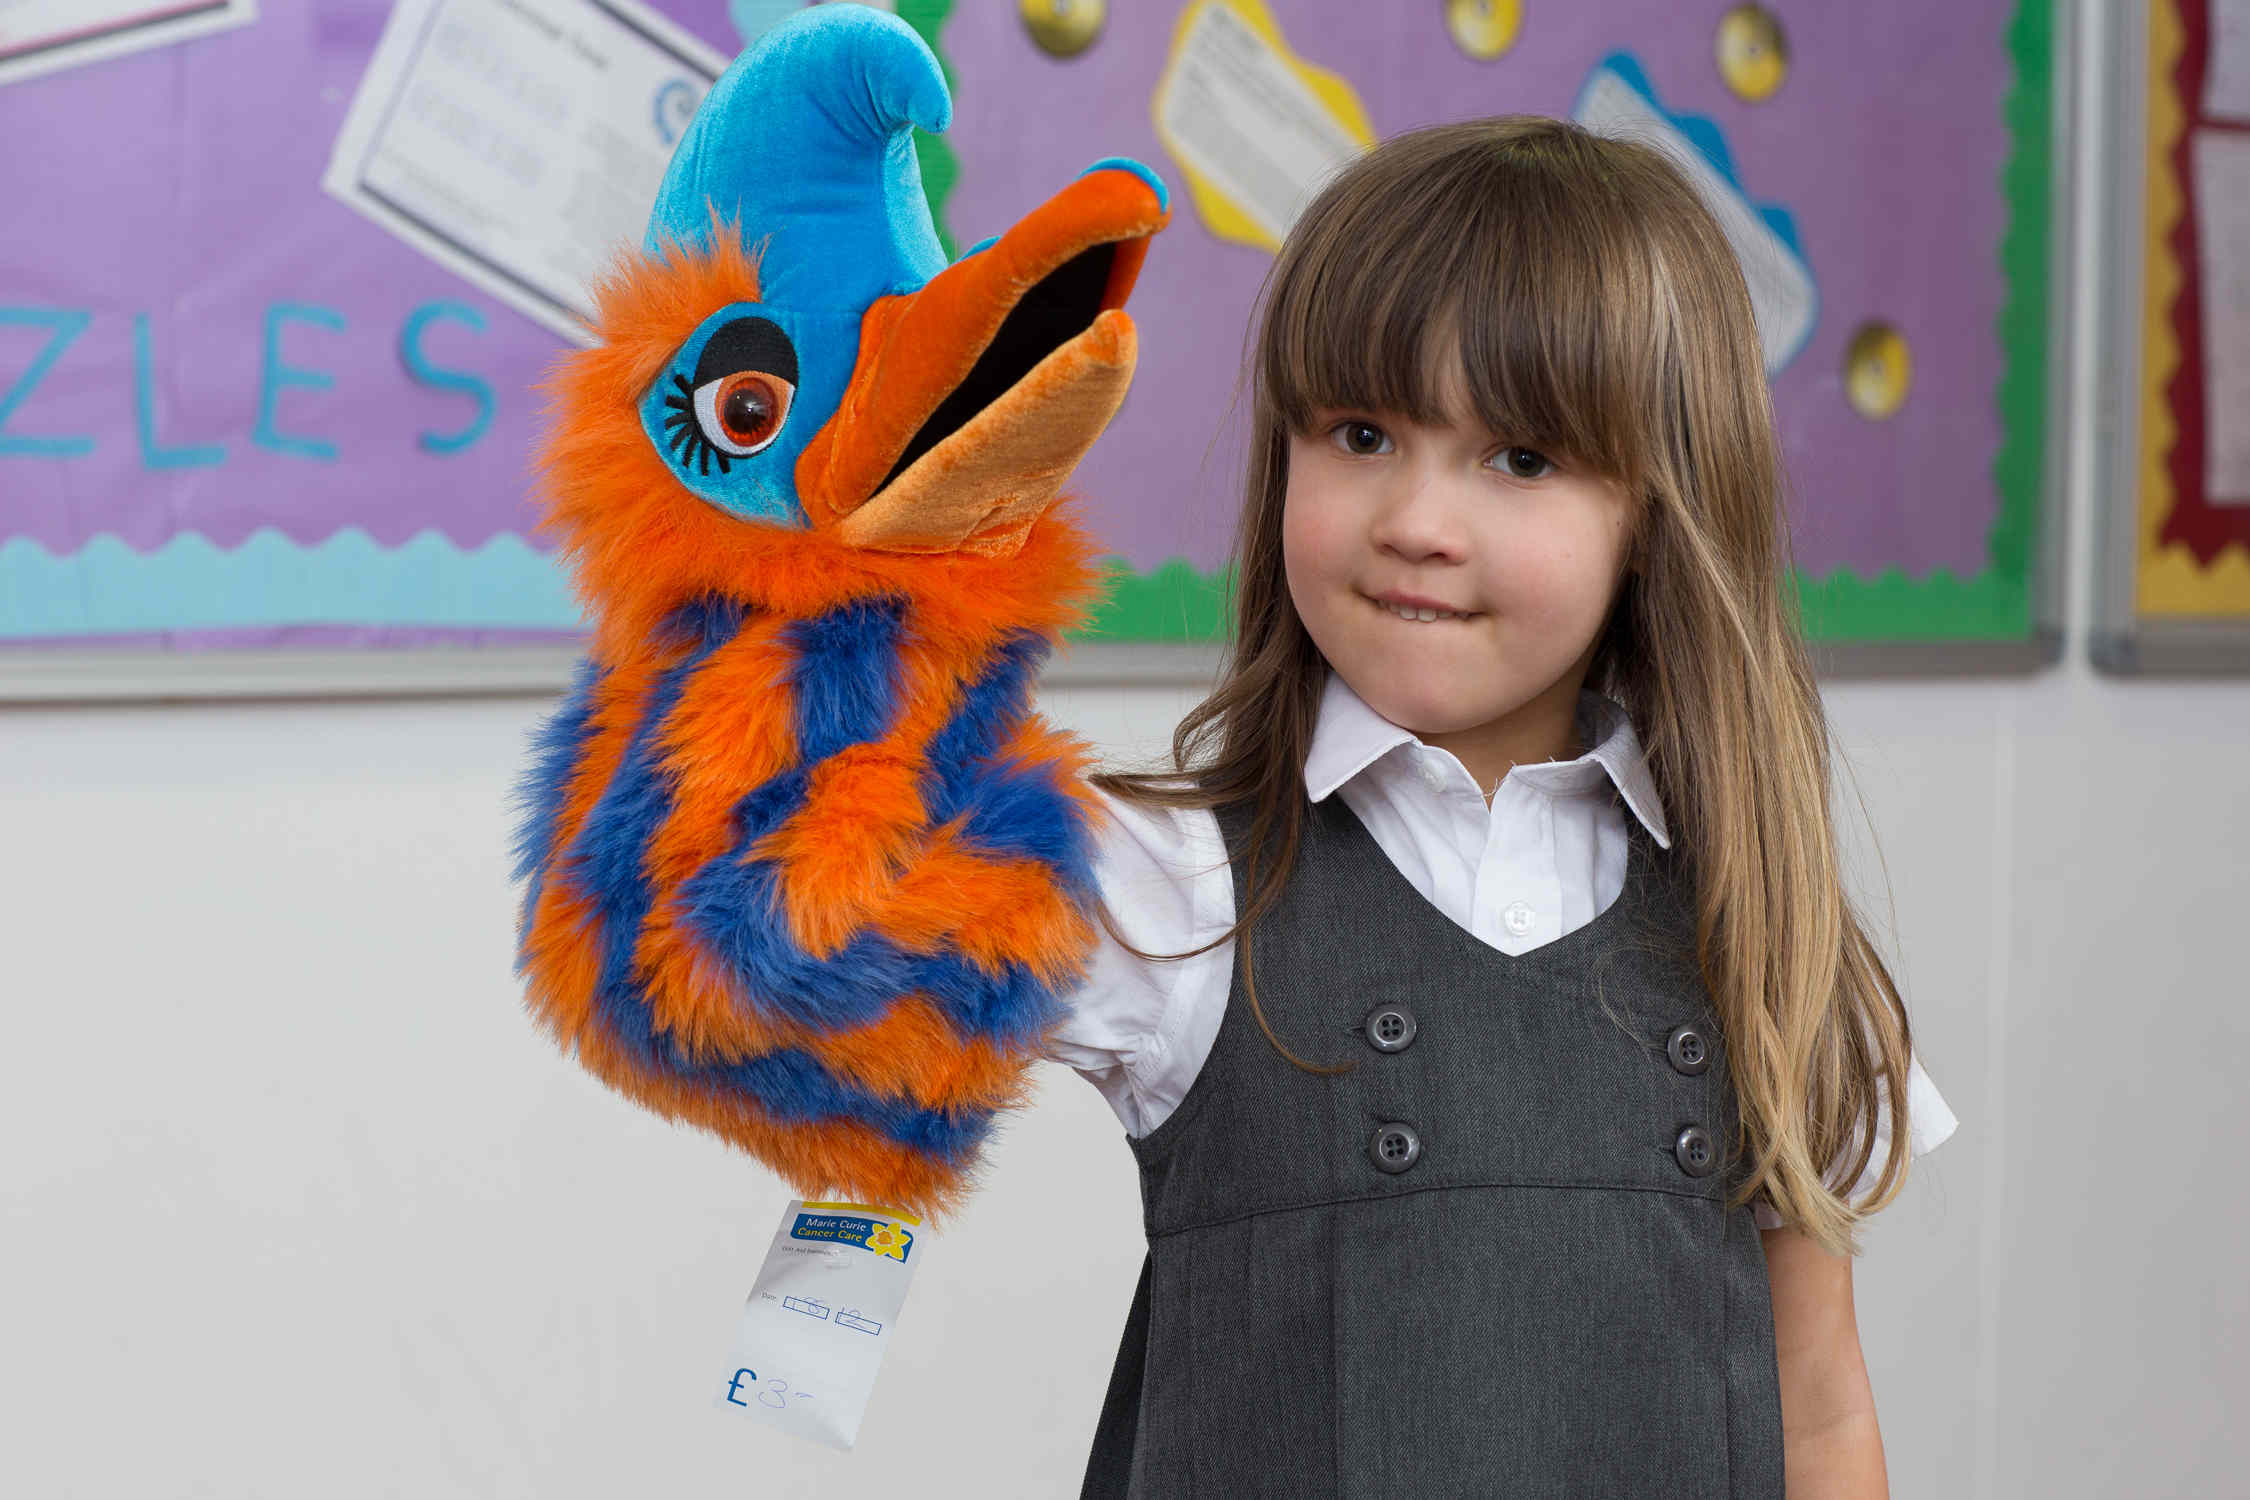 Developing a story with puppets